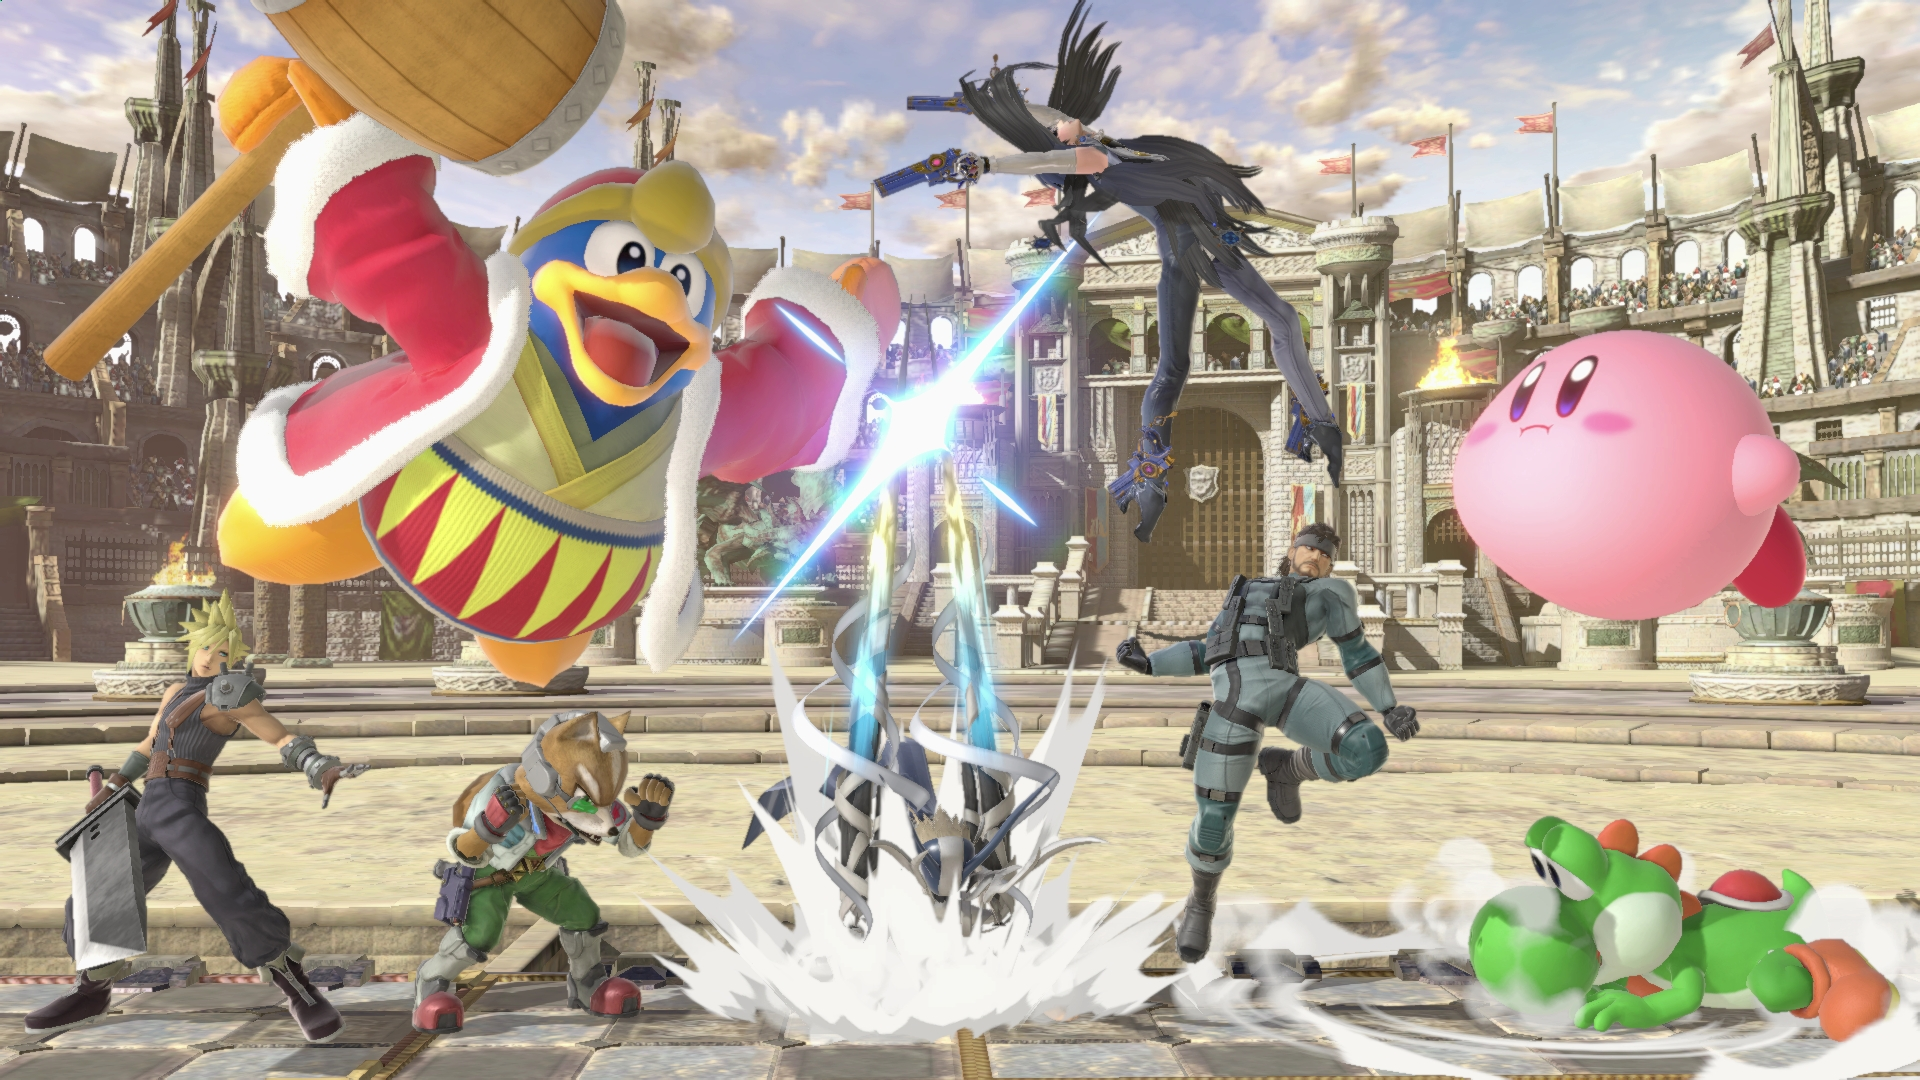 Professional Smash Bros. Melee players were part of the play-testing and quality assurance team for Smash Bros. Ultimate